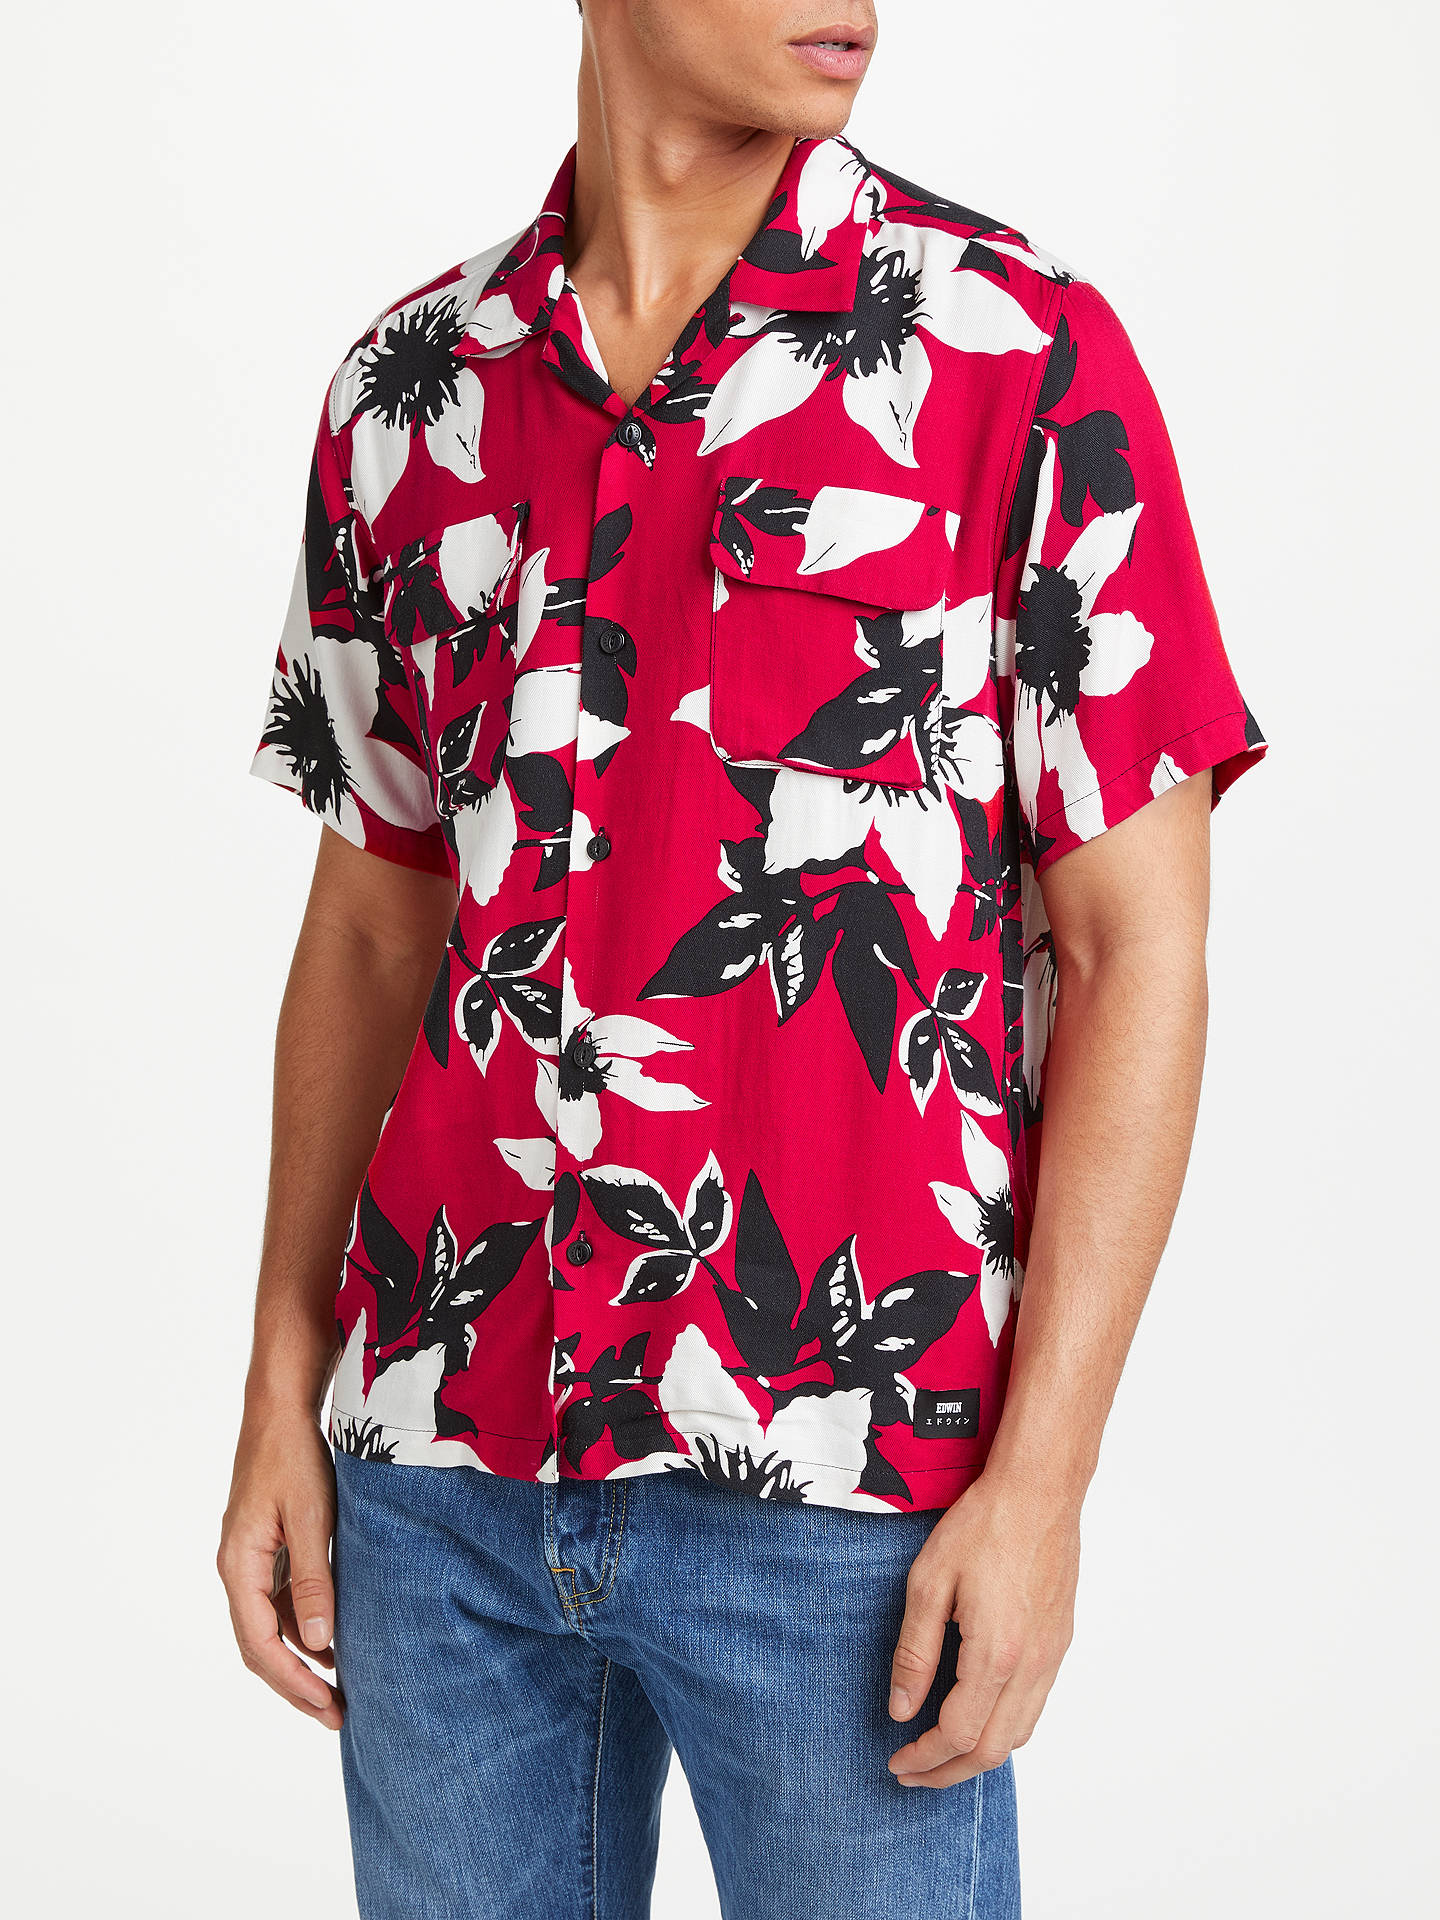 BuyEdwin Garage Floral Short Sleeve Shirt, Red, XL Online at johnlewis.com